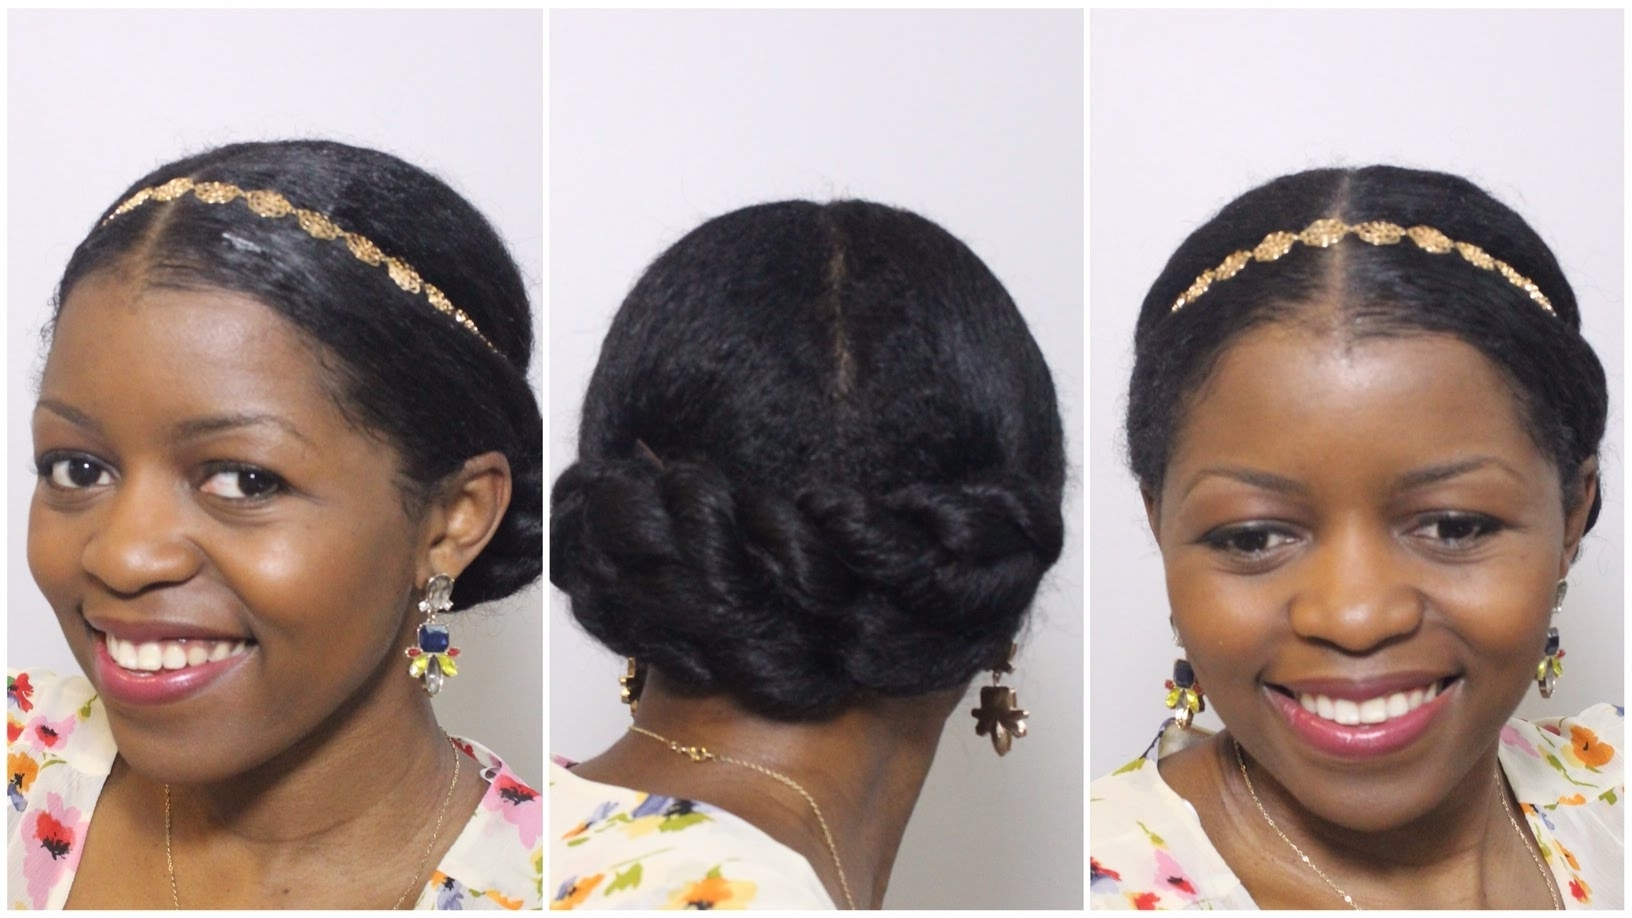 Elegant Twisted Bun Updo Perfect For Formal/wedding Occasion Pertaining To Natural Hair Wedding Updo Hairstyles (View 3 of 15)